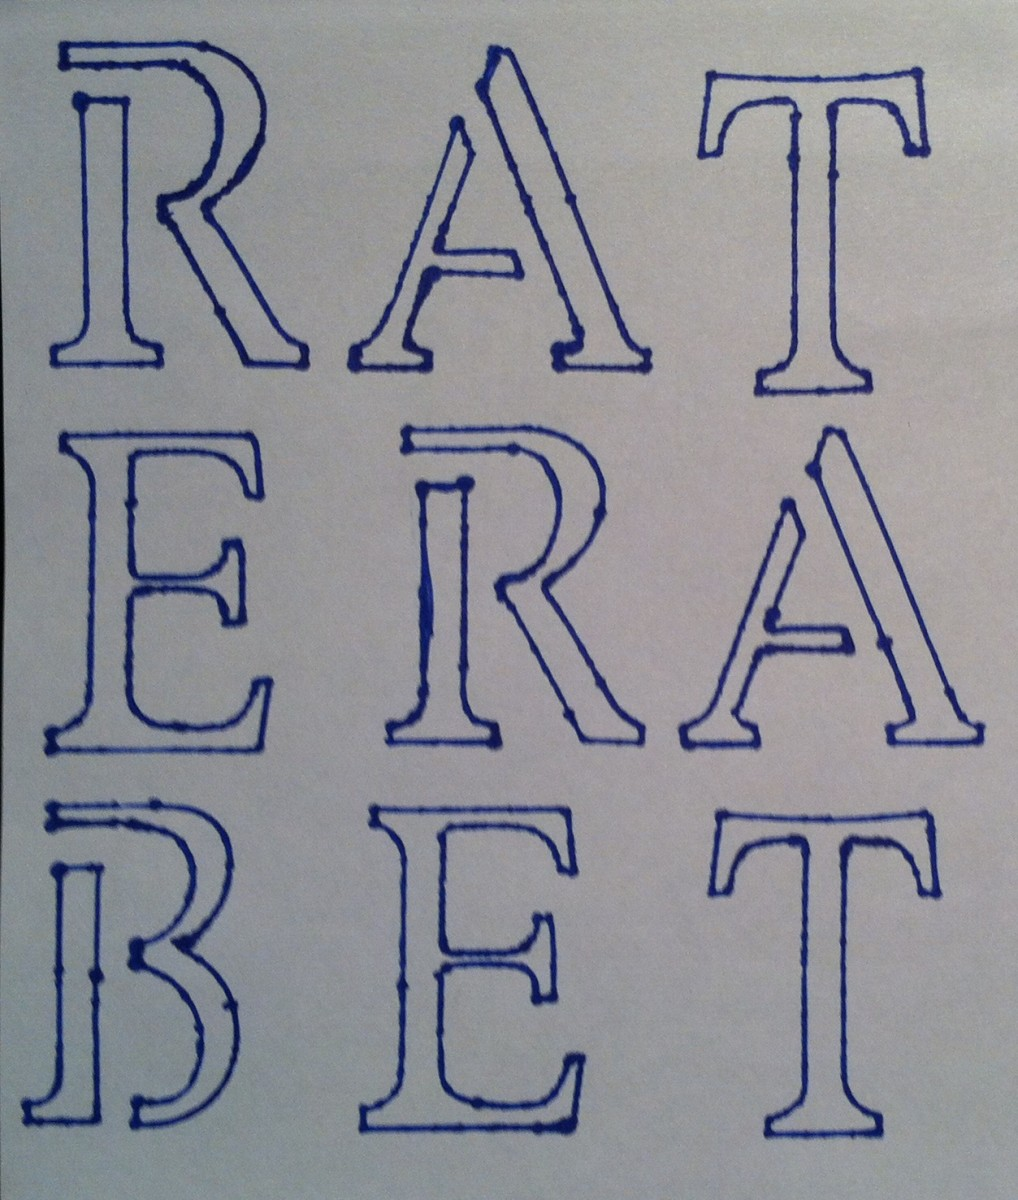 Completed word puzzle. Across words: Rat, Era, Bet.Then the words going down Reb, Are, and Tat.